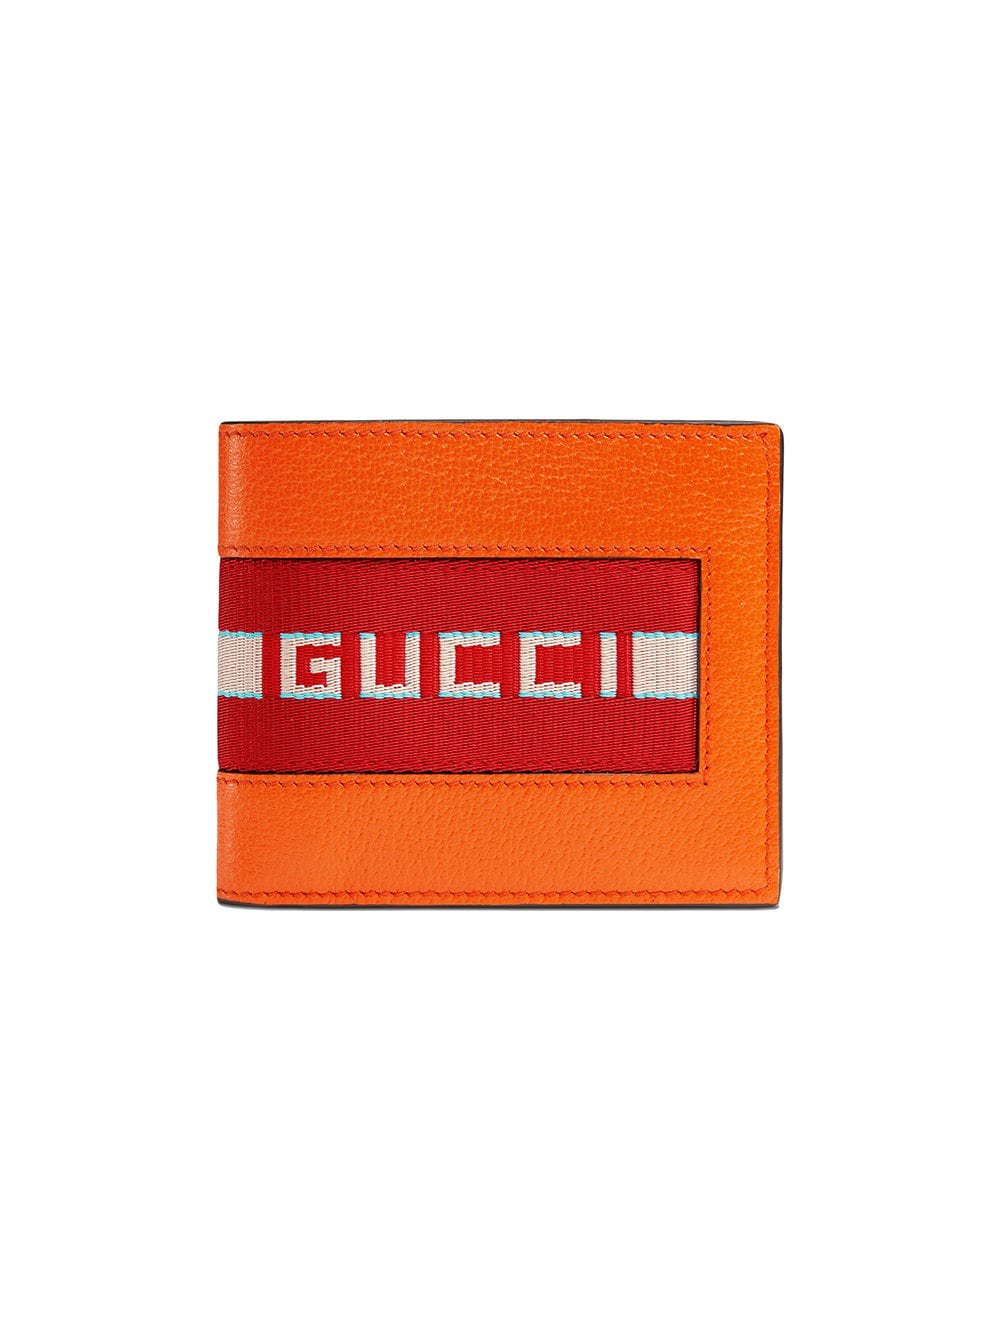 f6c3f35b3711 Gucci Orange Canvas Stripe Leather Wallet | ModeSens